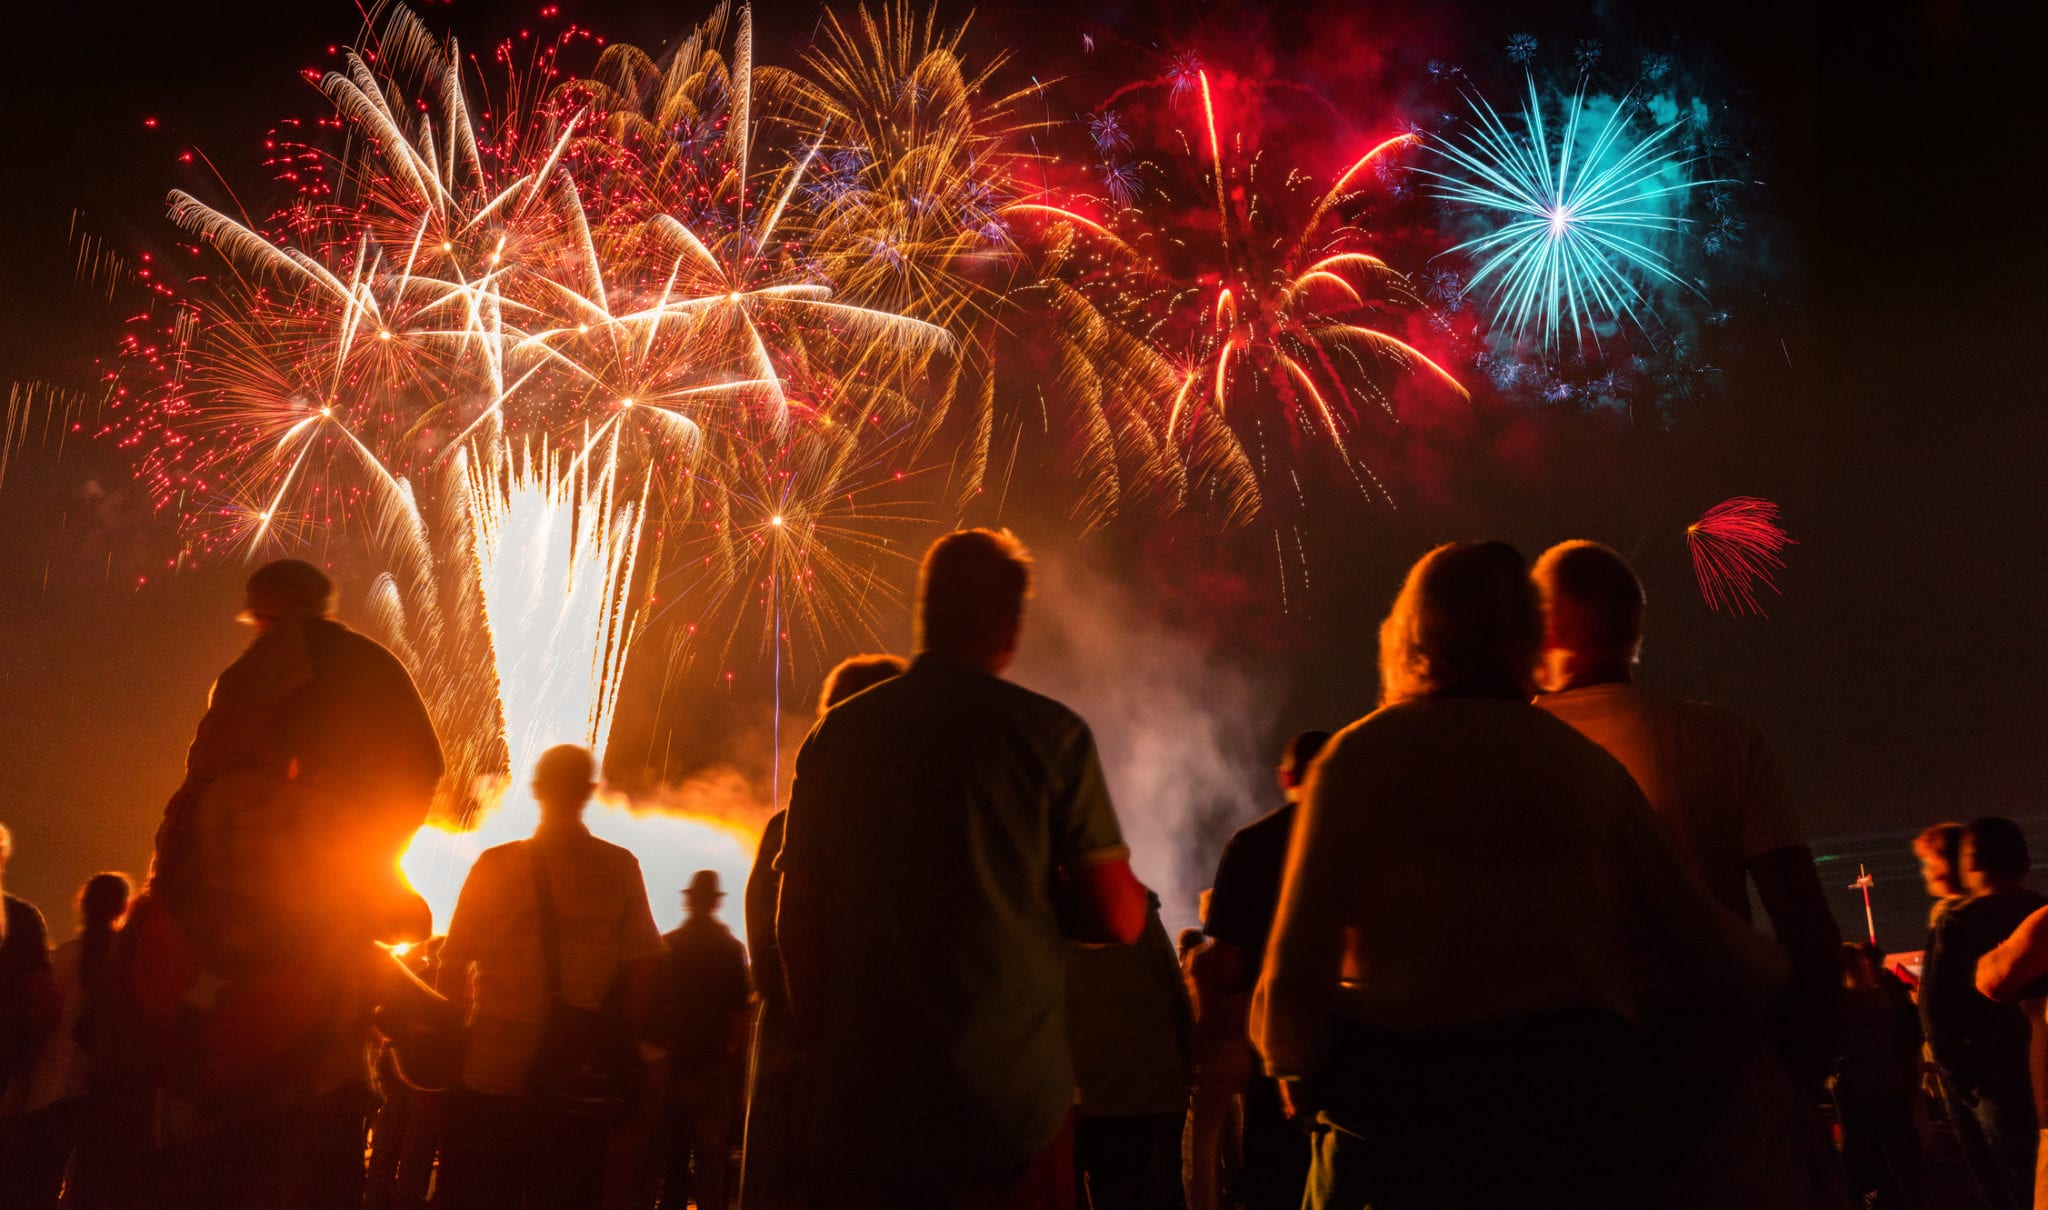 Fireworks Insurance, special event insurance